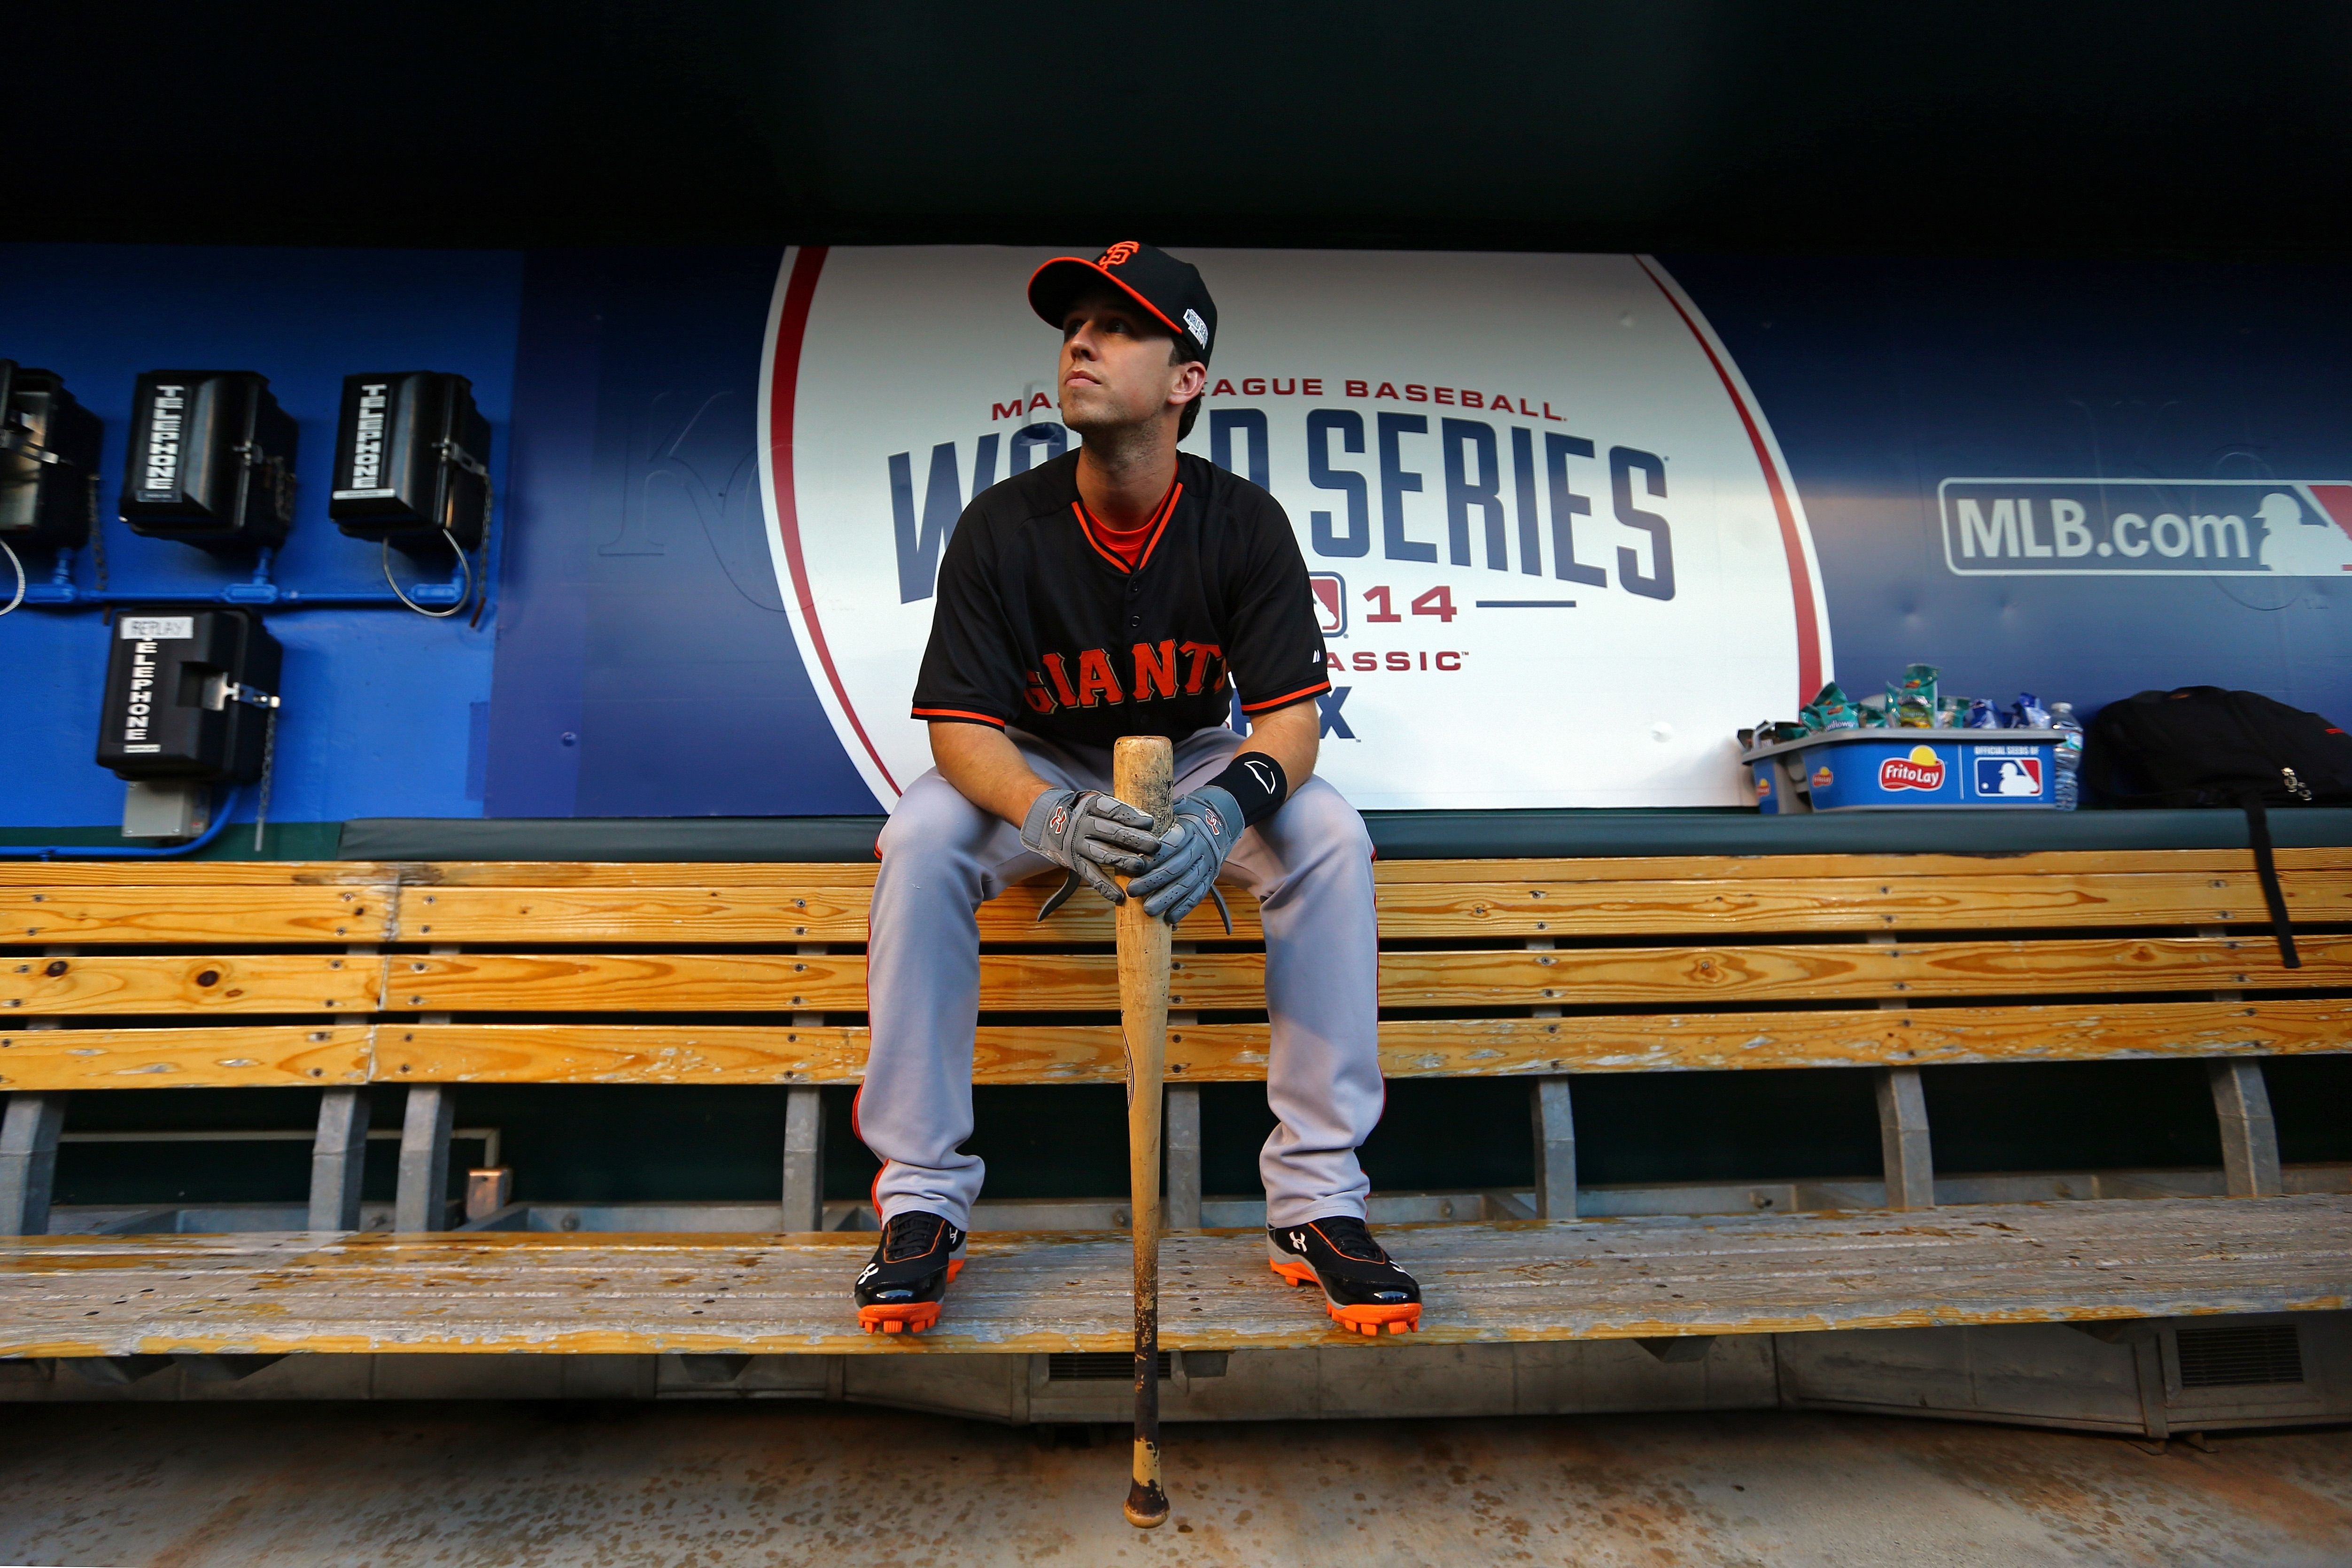 Buster Posey isn't a flamboyant presence but the San Francisco Giants' catcher could become the next face of  baseball.